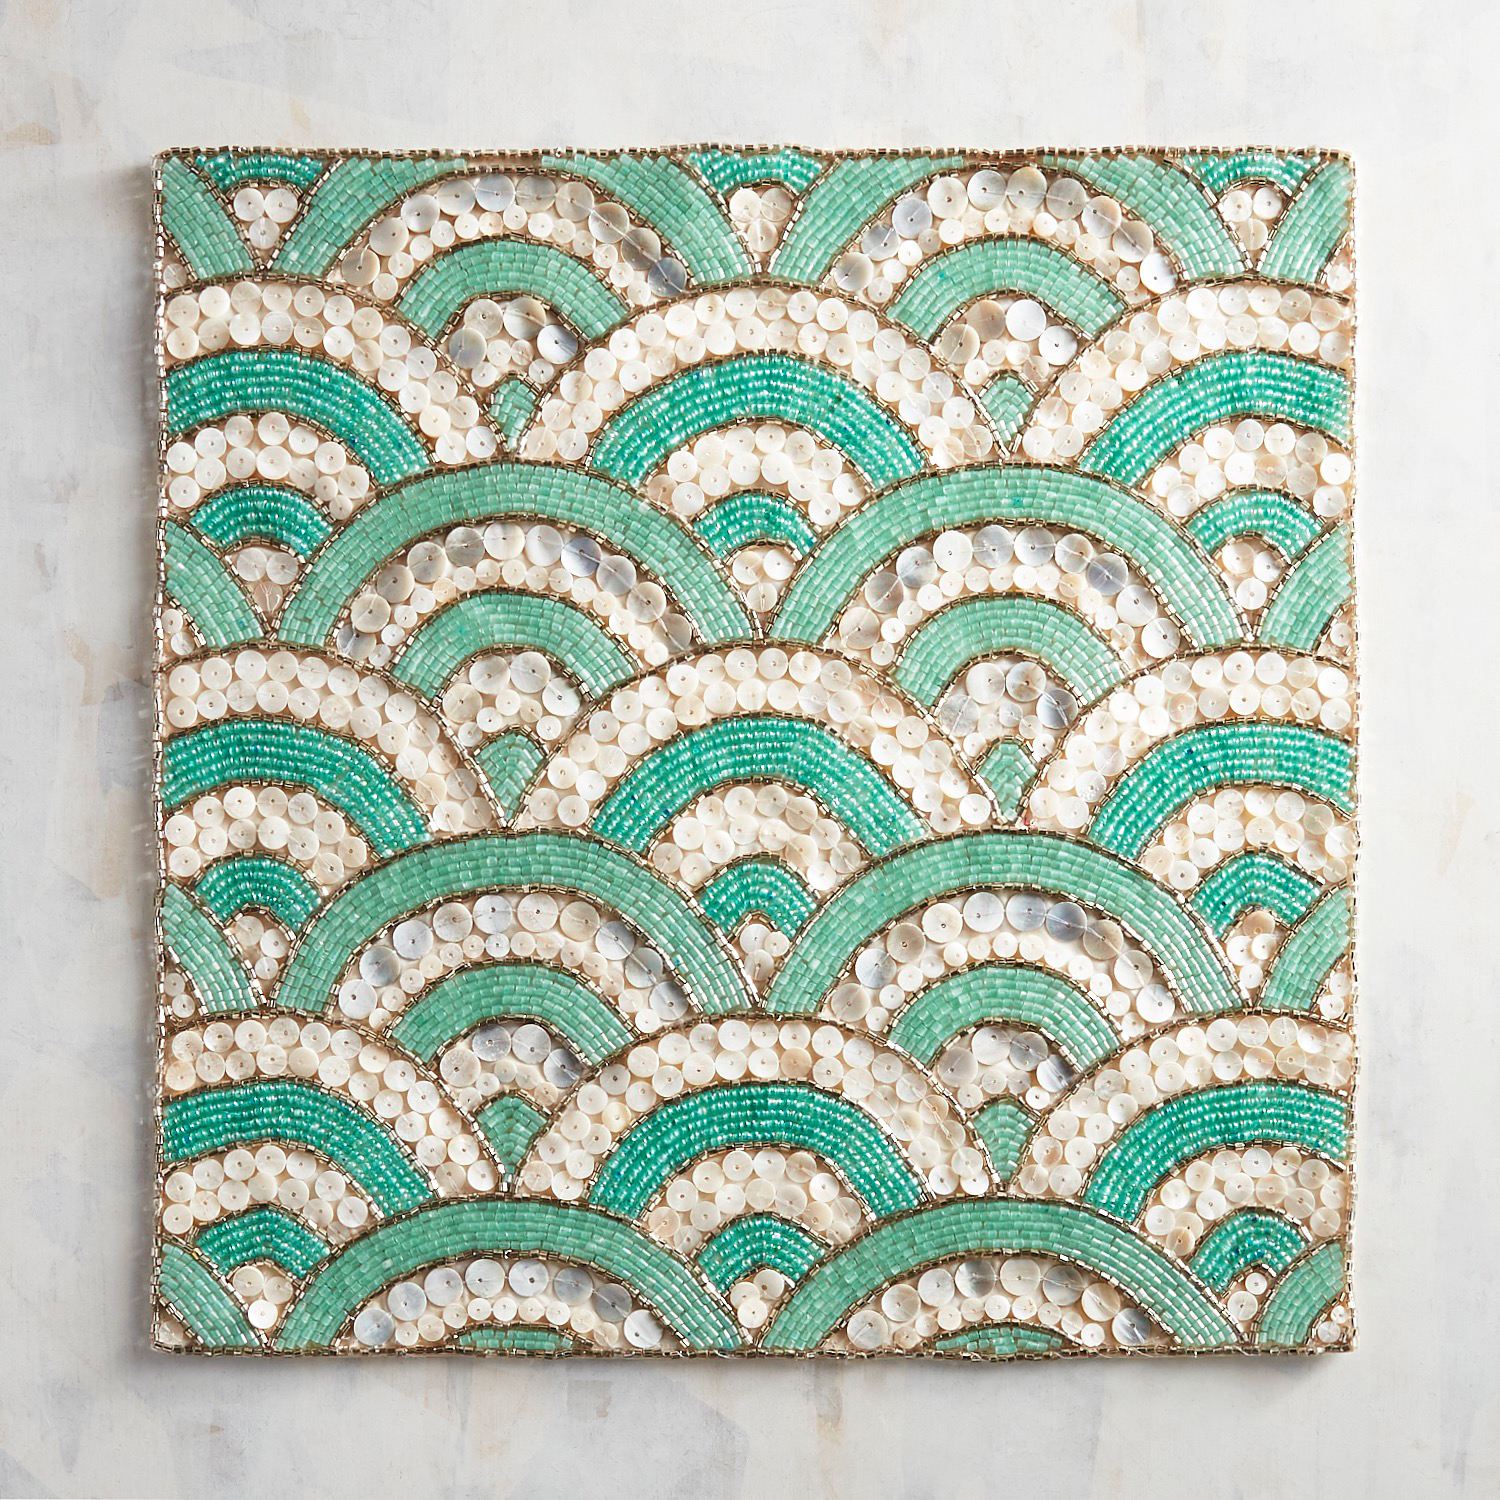 Mother-of-Pearl Mermaid Beaded Placemat